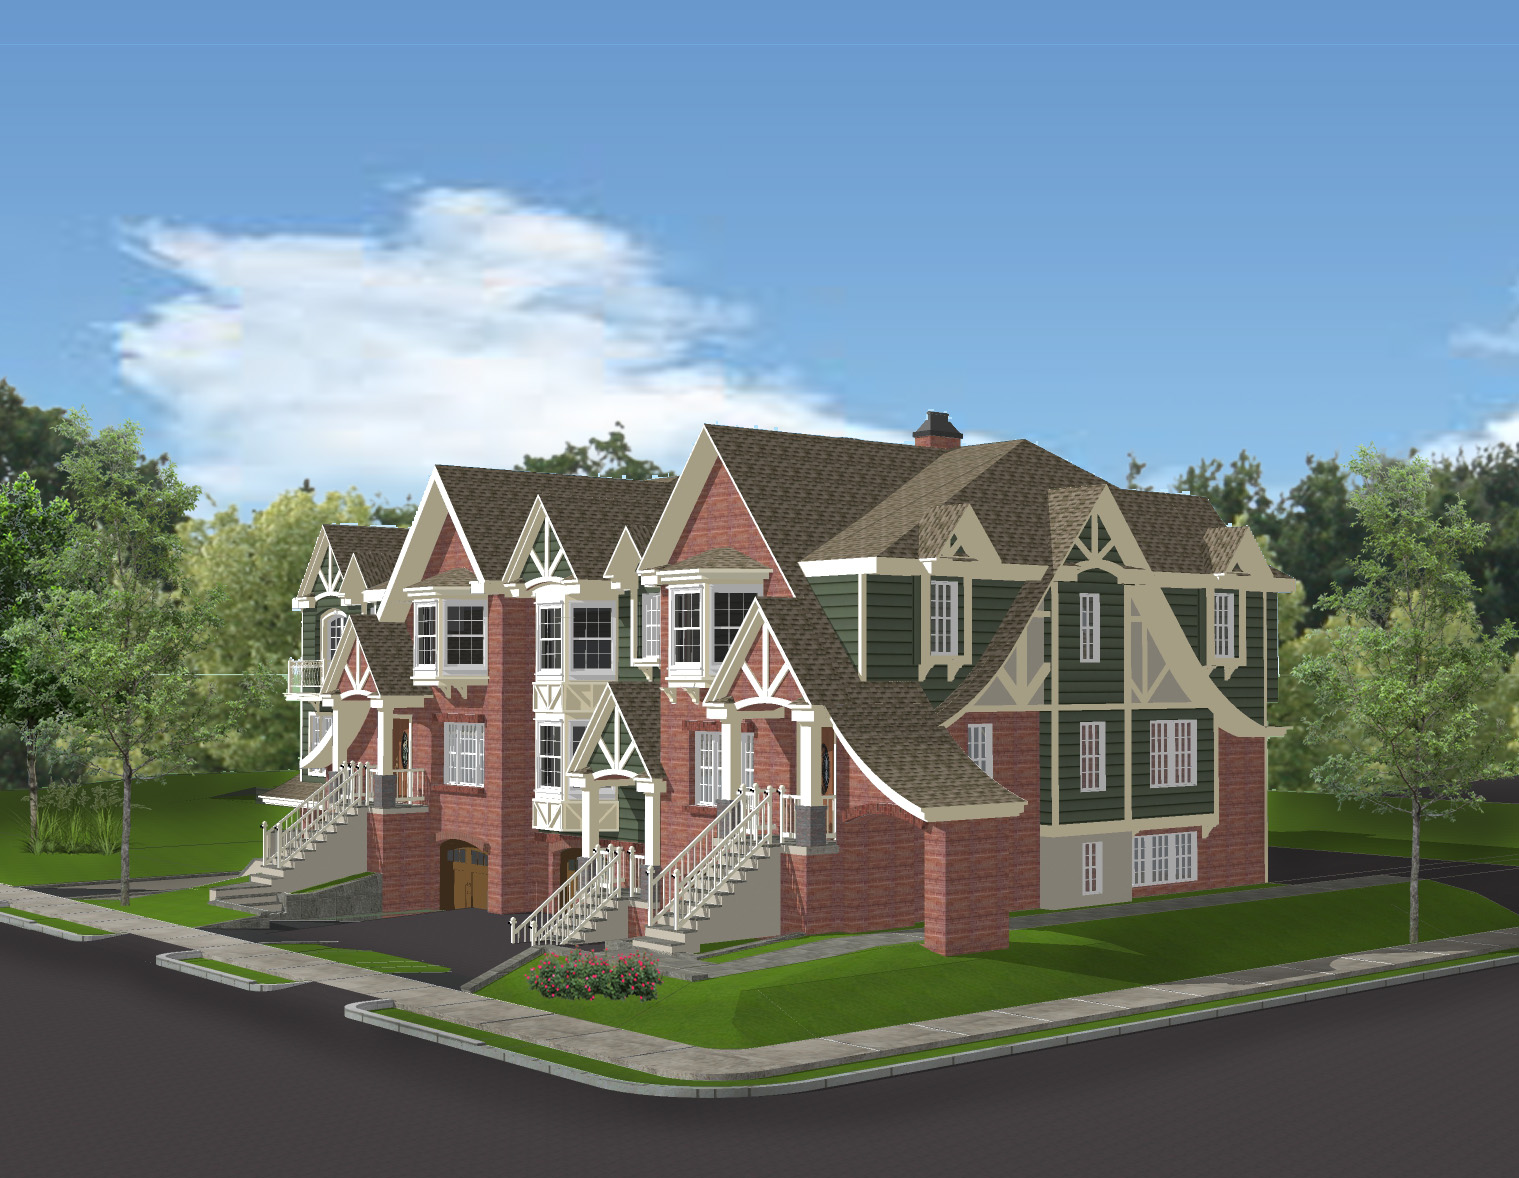 south 10th -Rendering 3p (1)